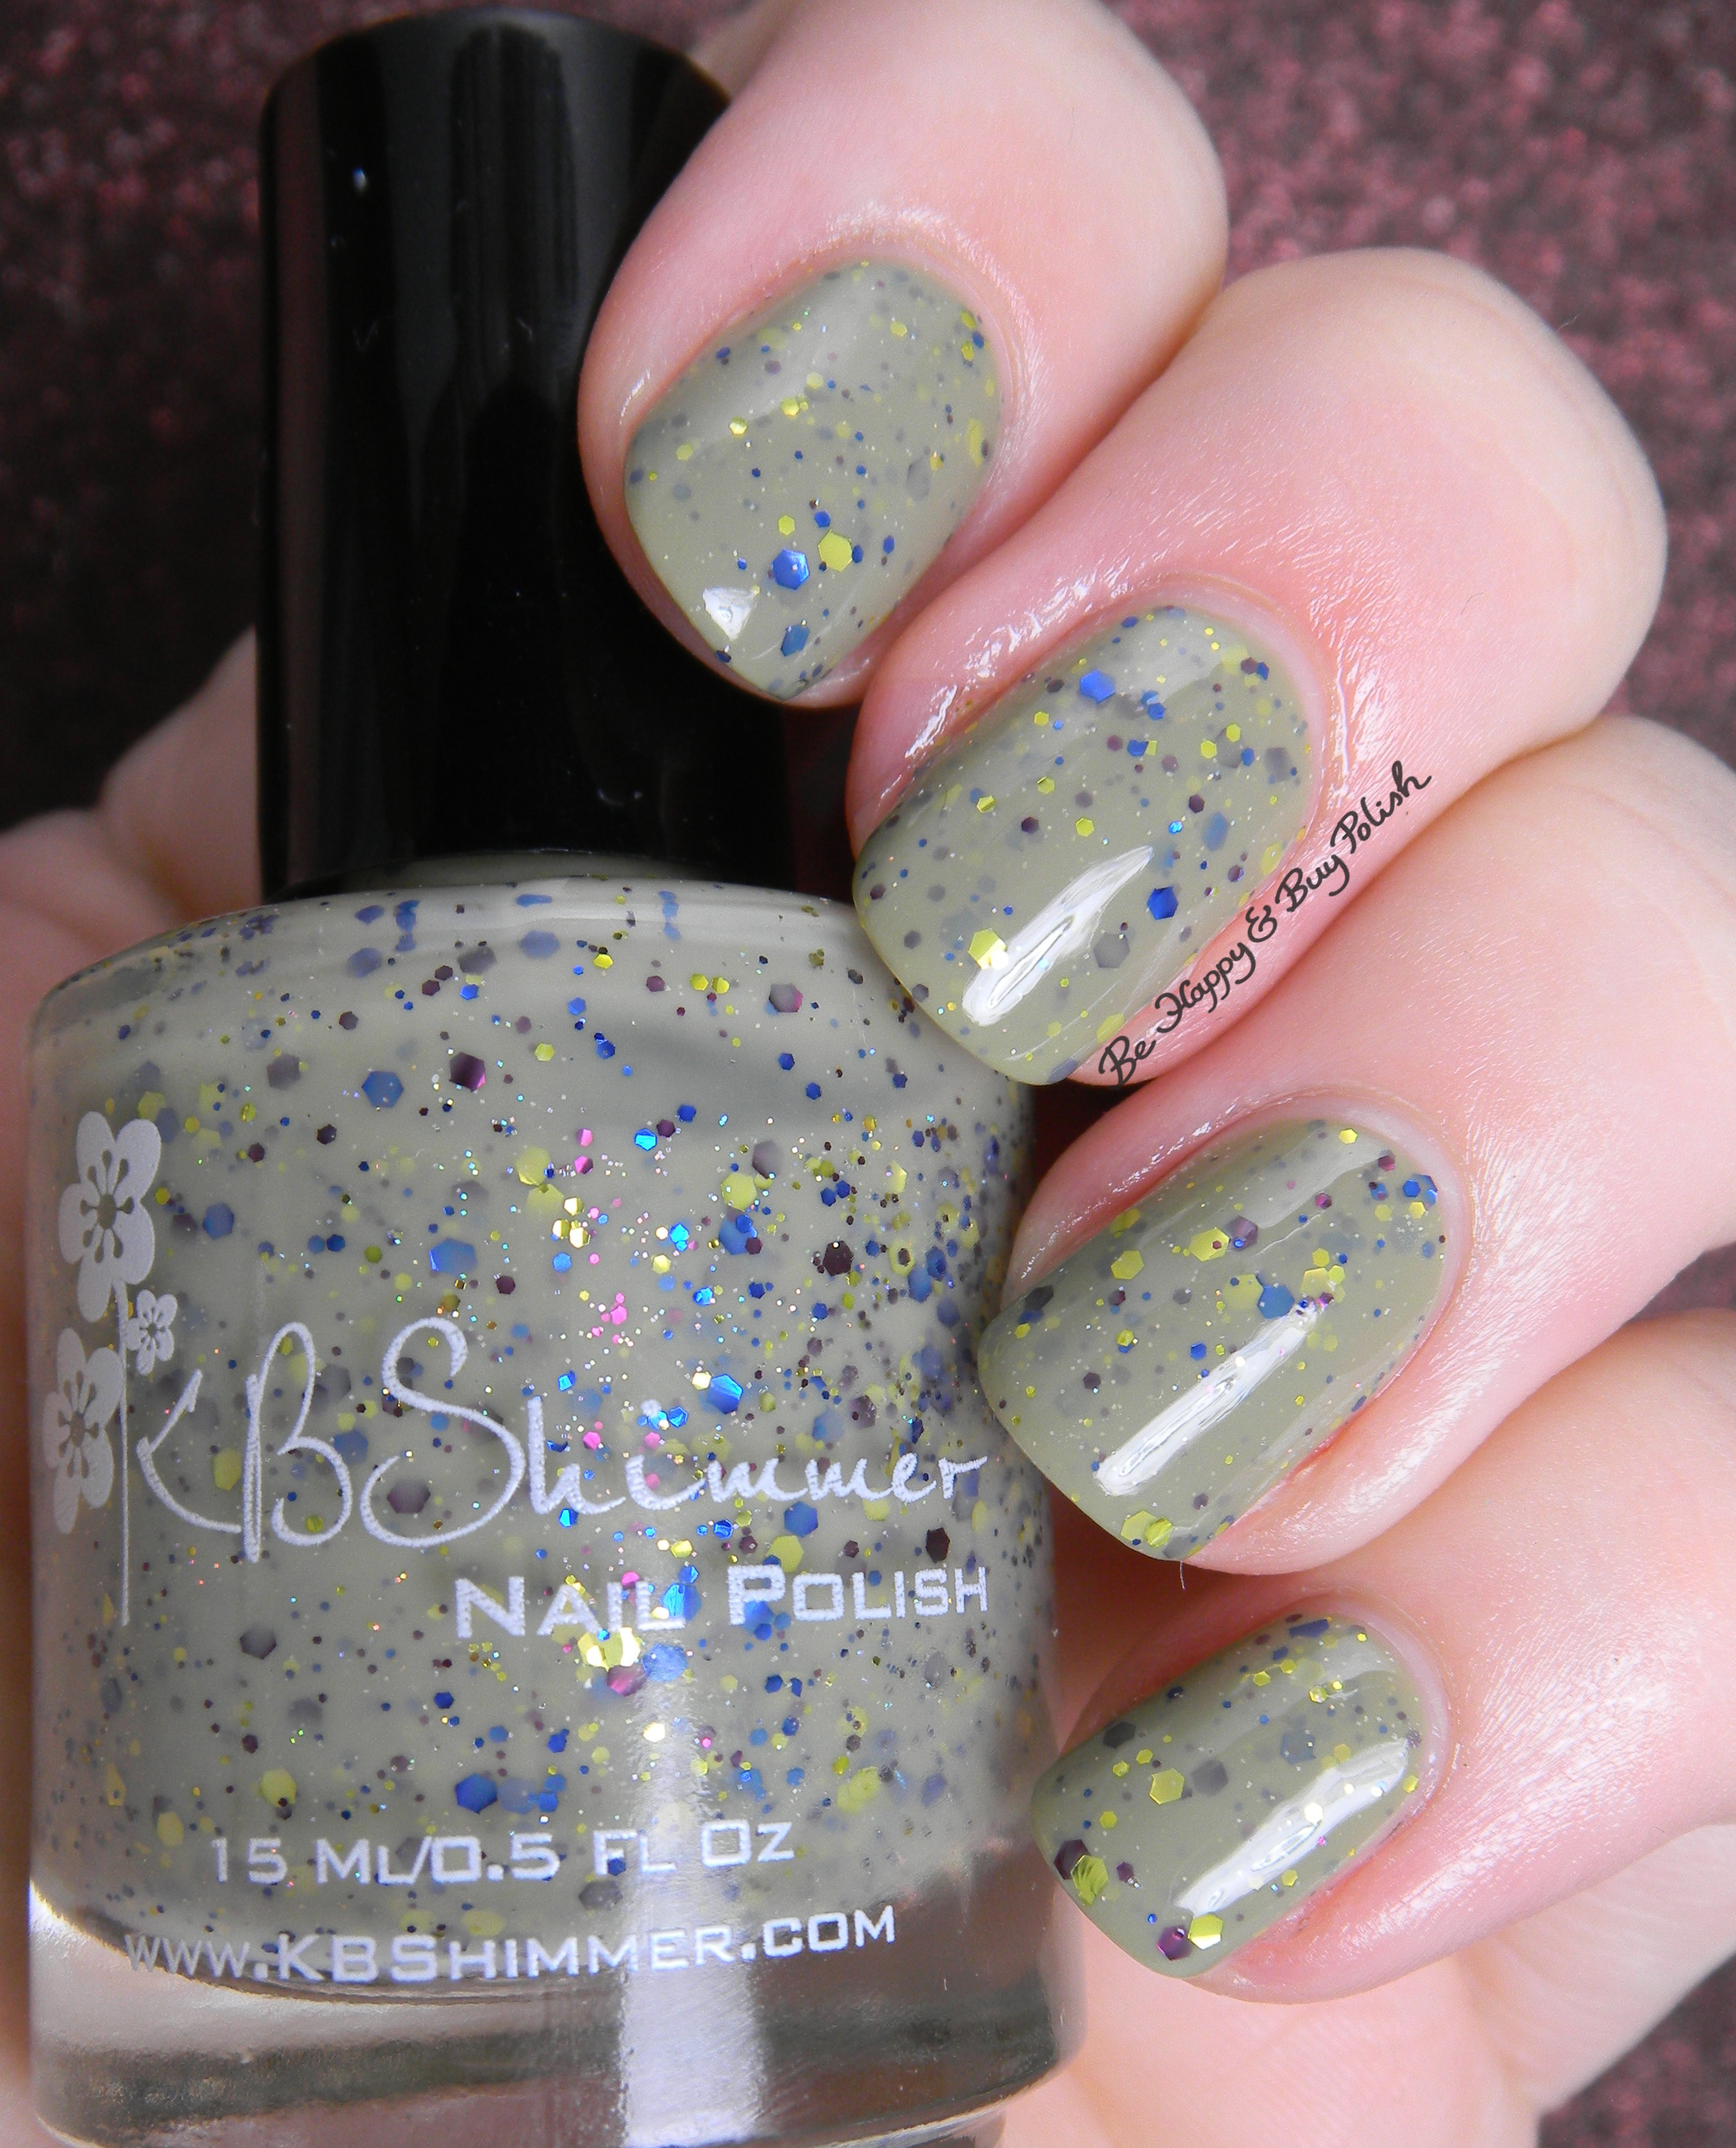 KBShimmer Fall 2015 nail polish collection (partial) | Be Happy and ...